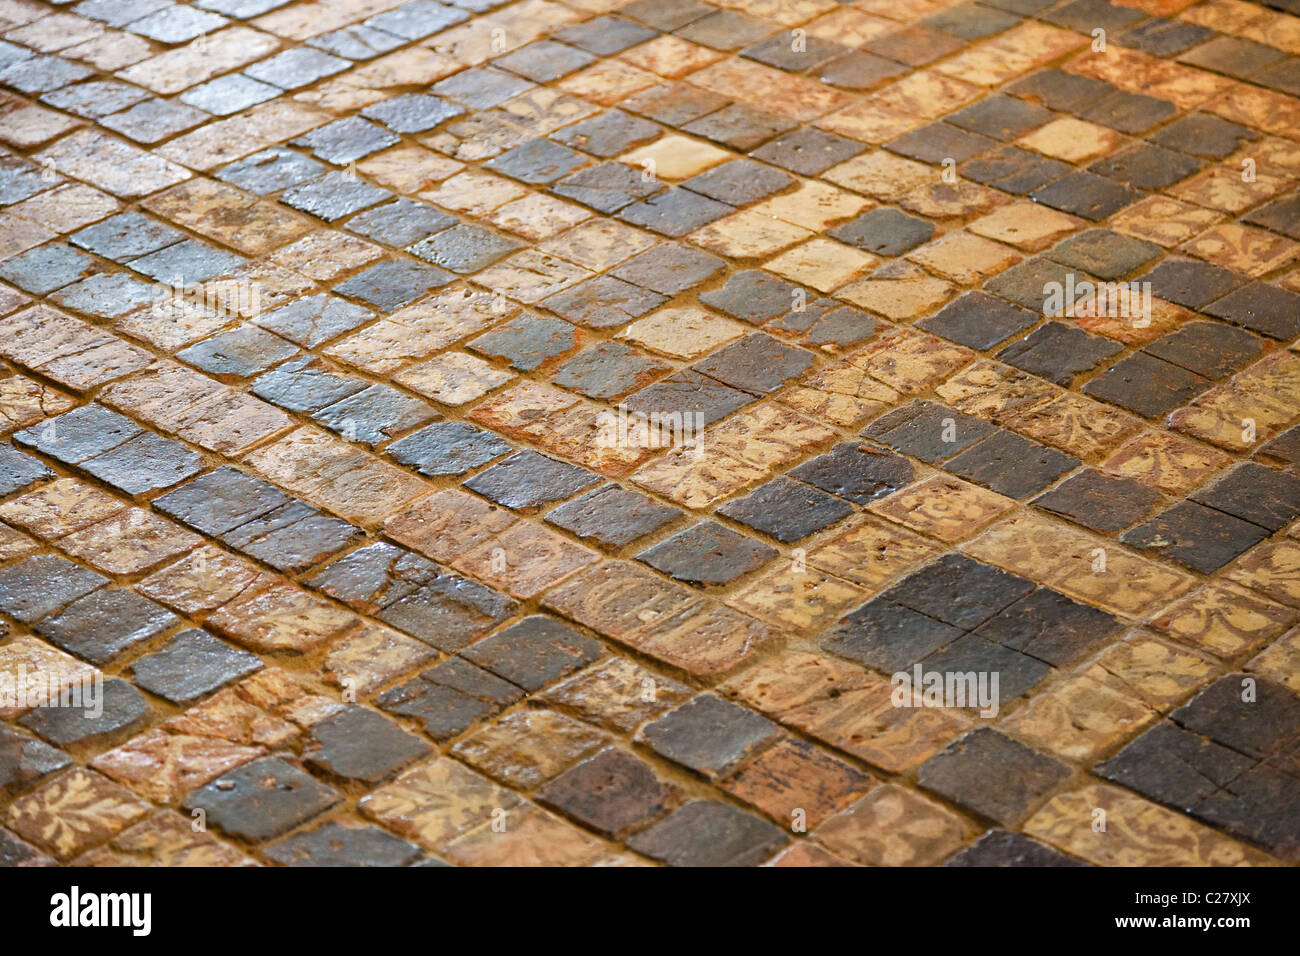 Detail of the original medieval mosaic floor tiles at Château de Suscinio, Morbihan, Brittany, France, Europe - Stock Image